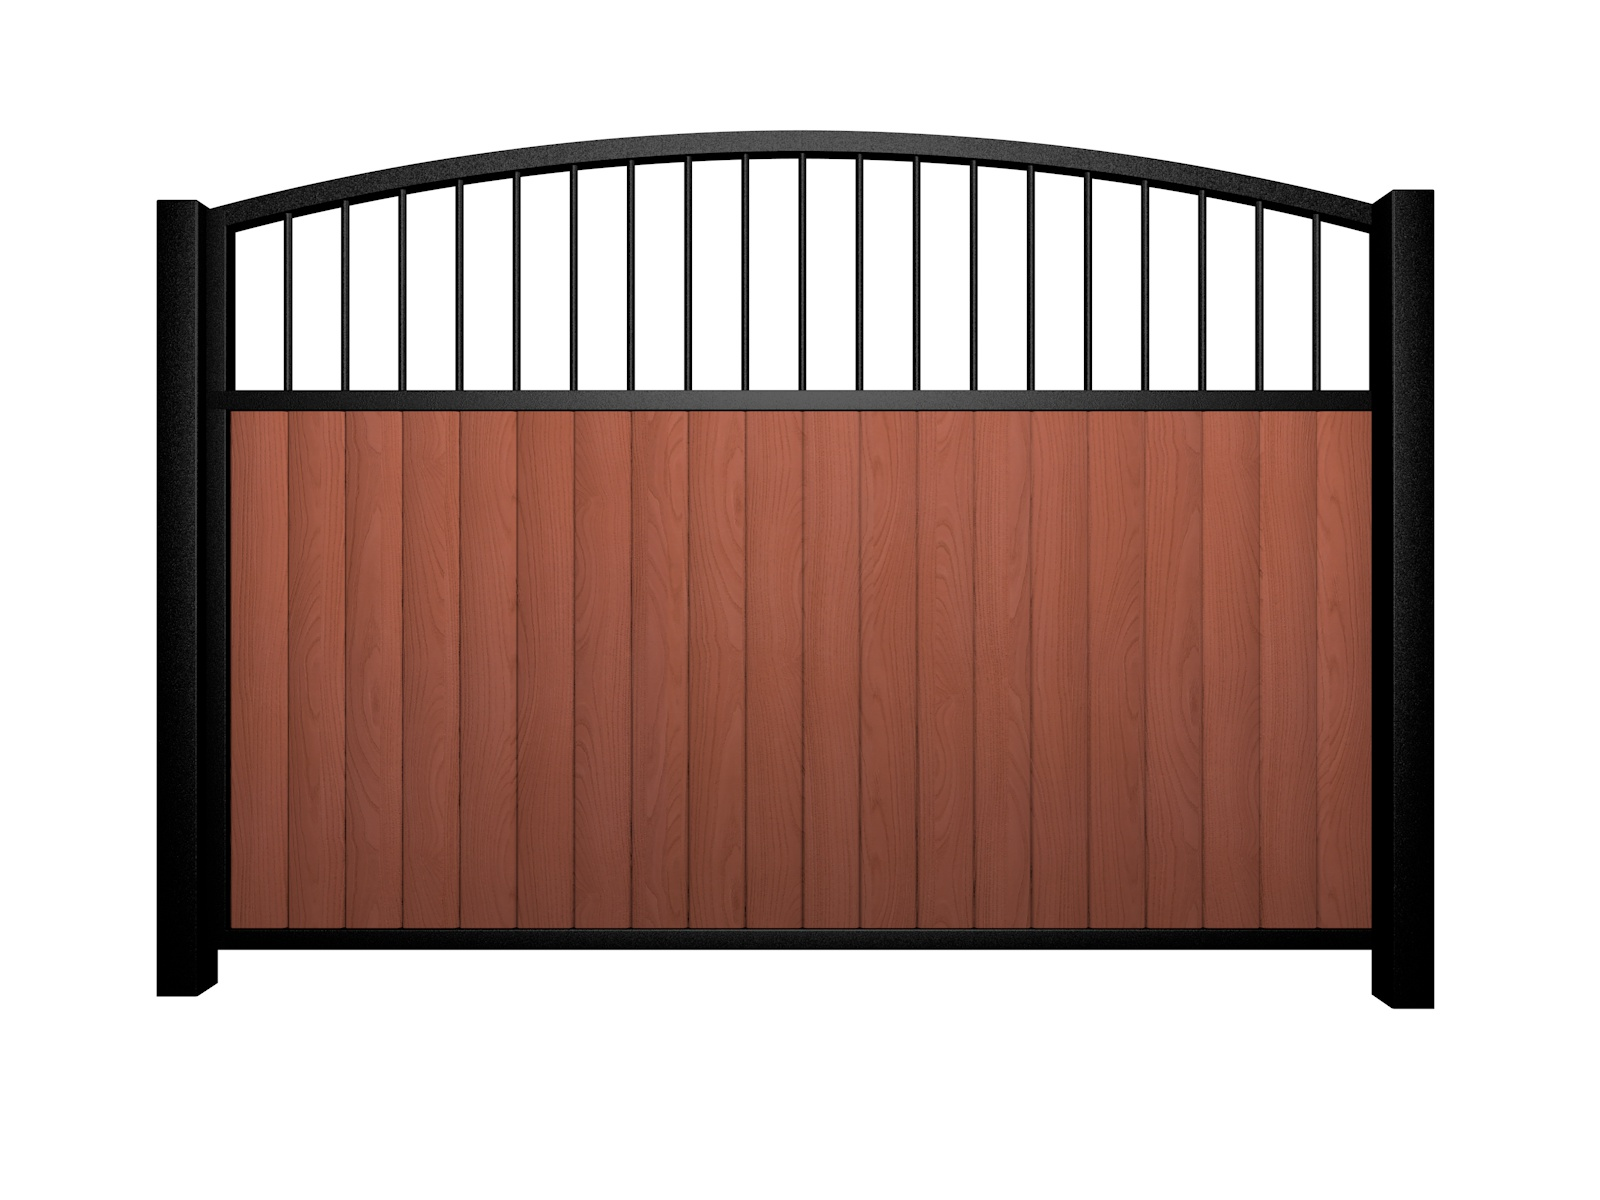 Sliding wood fill metal framed open arch top electric gate bristol